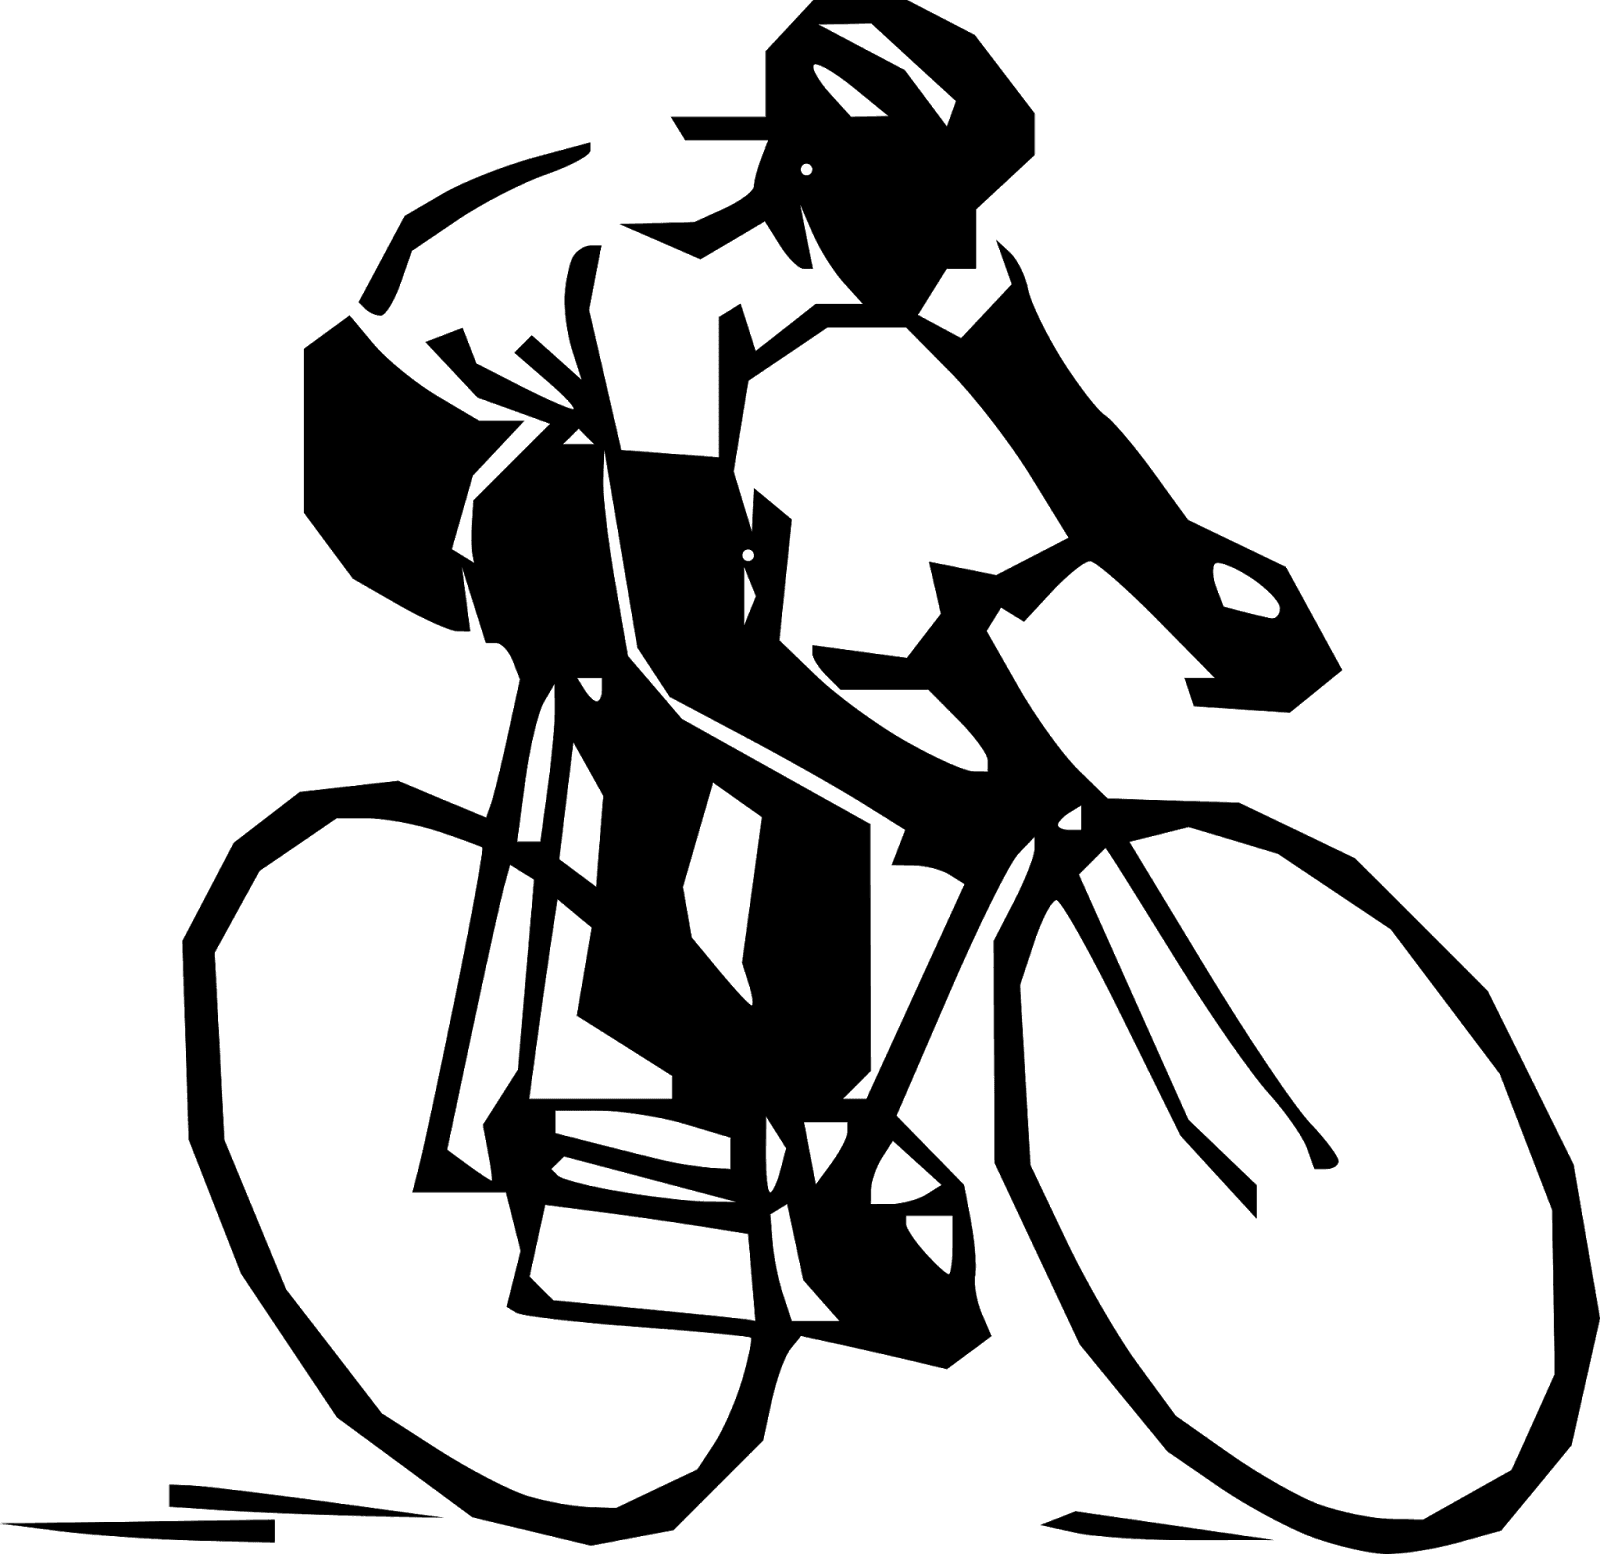 Cycling clipart bike ride, Cycling bike ride Transparent.